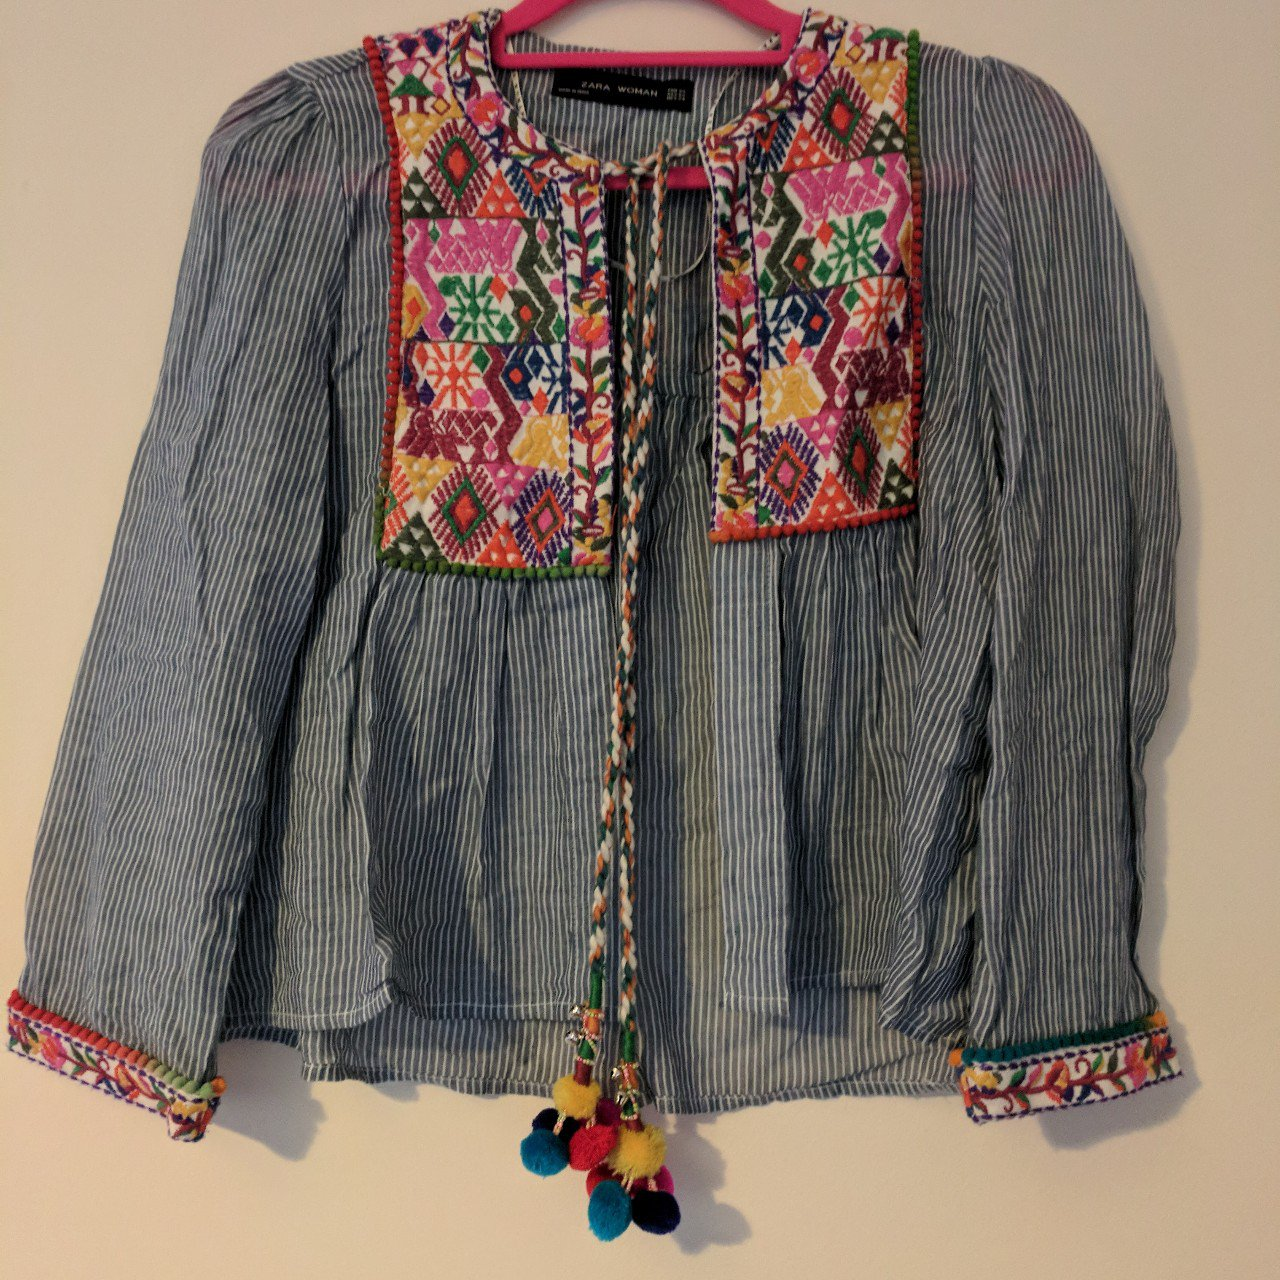 Zara Embroidered Jacket With Pom Poms Very Boho Perfect For Depop